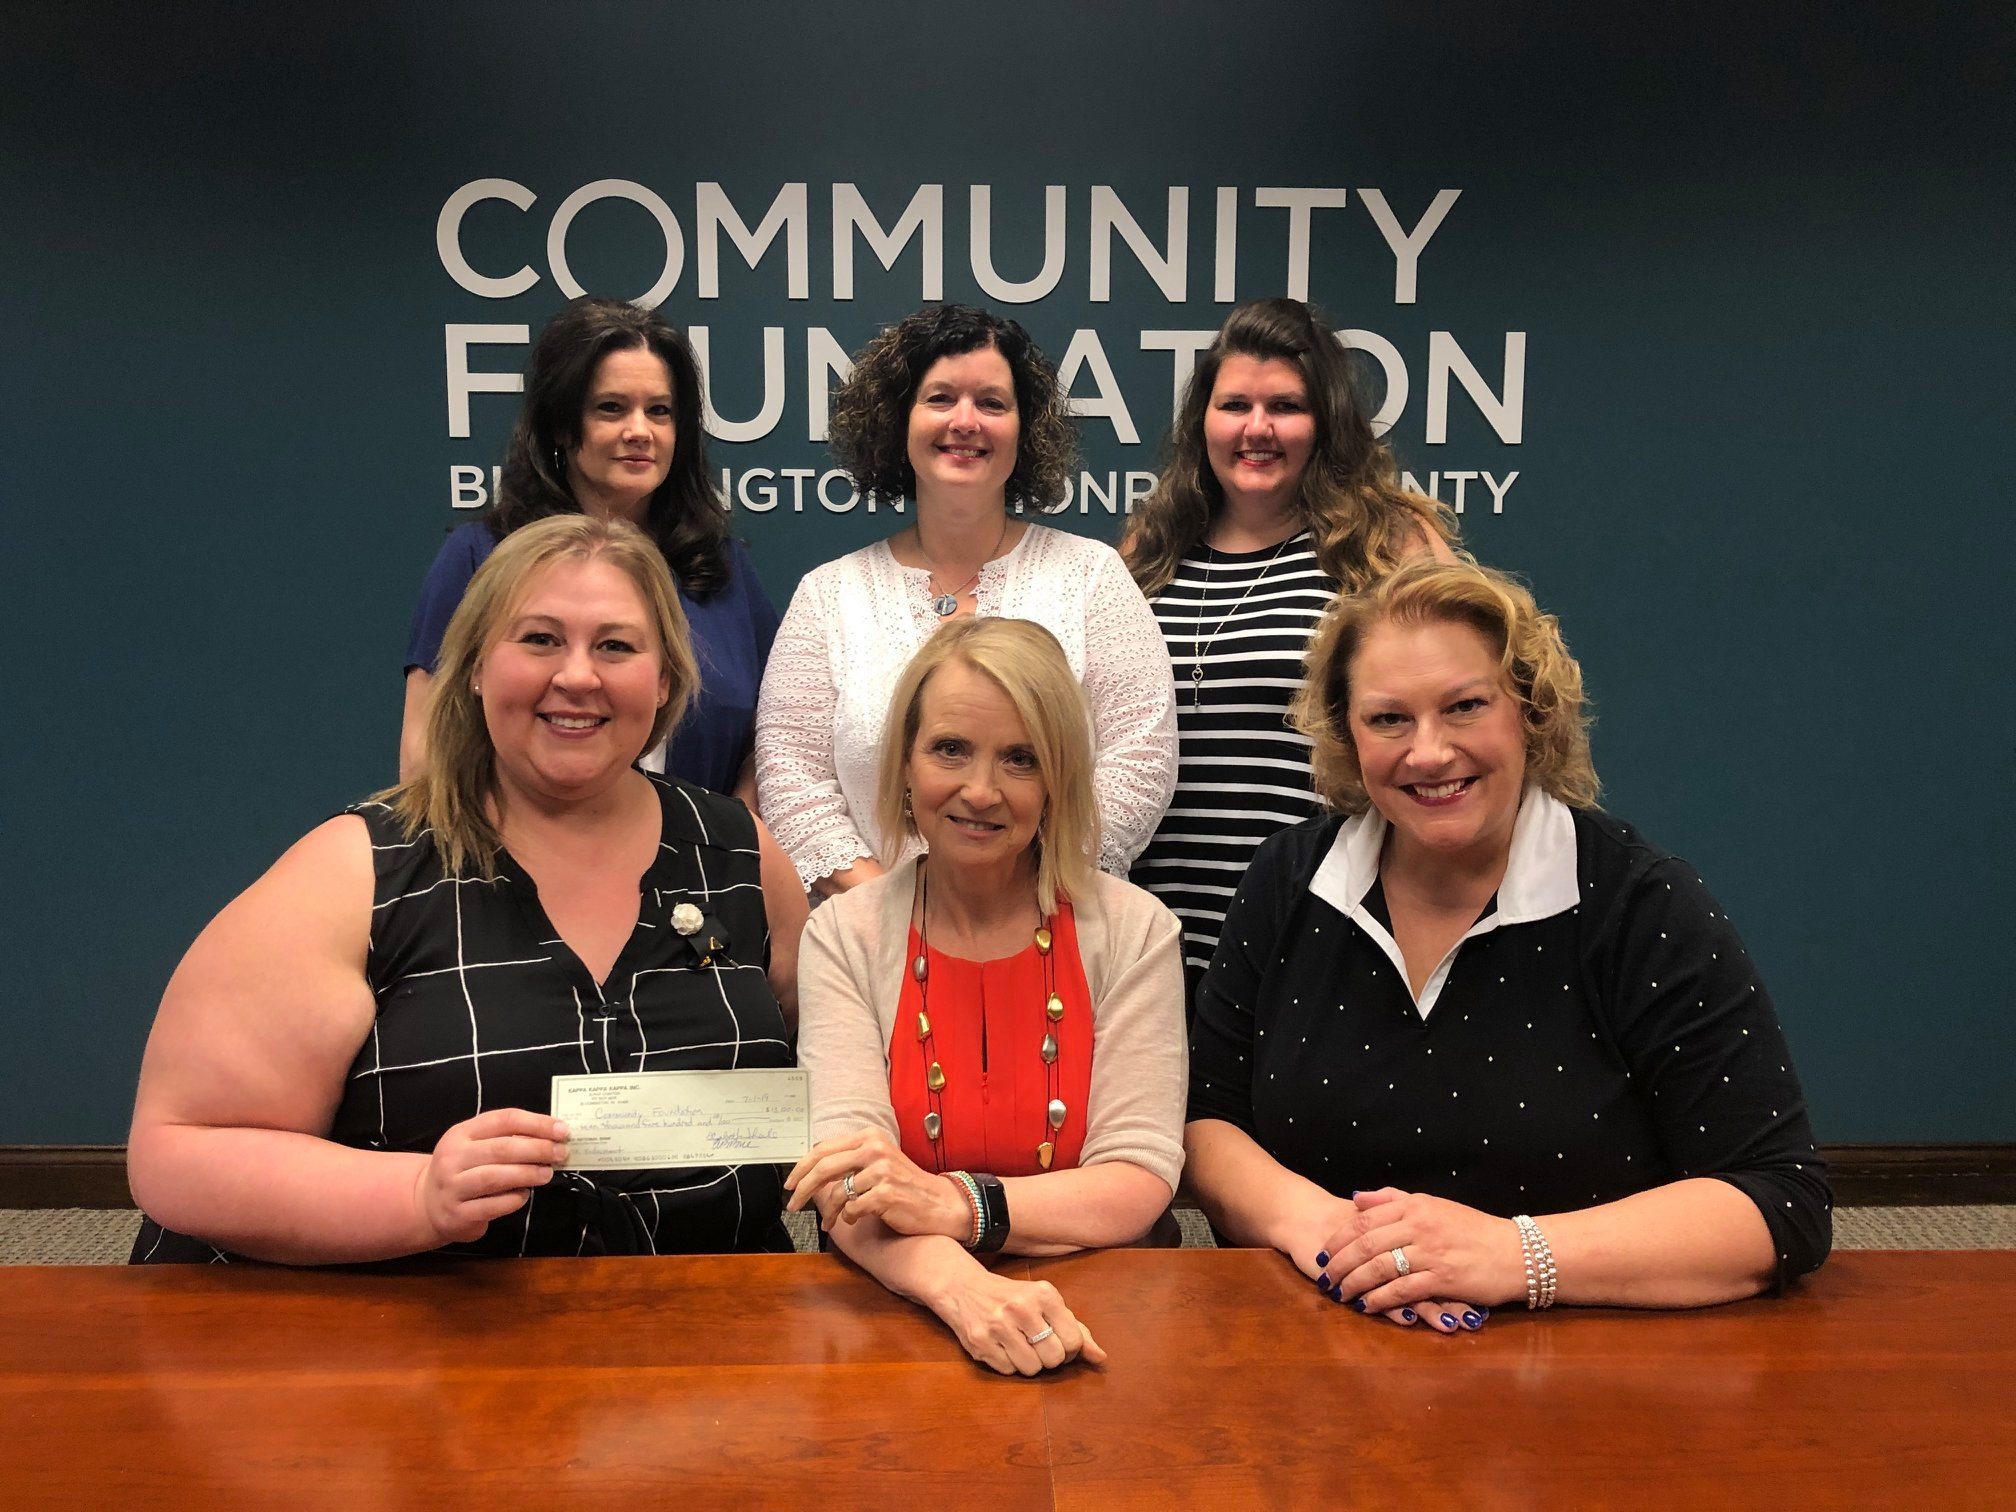 Tri Kappa leaders establishing a new endowment with the Community Foundation of Bloomington and Monroe County on Monday, July 1, 2019.  First row, left to right: Trish Surfus Smith, Tina Peterson (Community Foundation), Amanda Burnham. Second Row: Stephanie Williamson, Beth Theile, and Megan Parmenter.